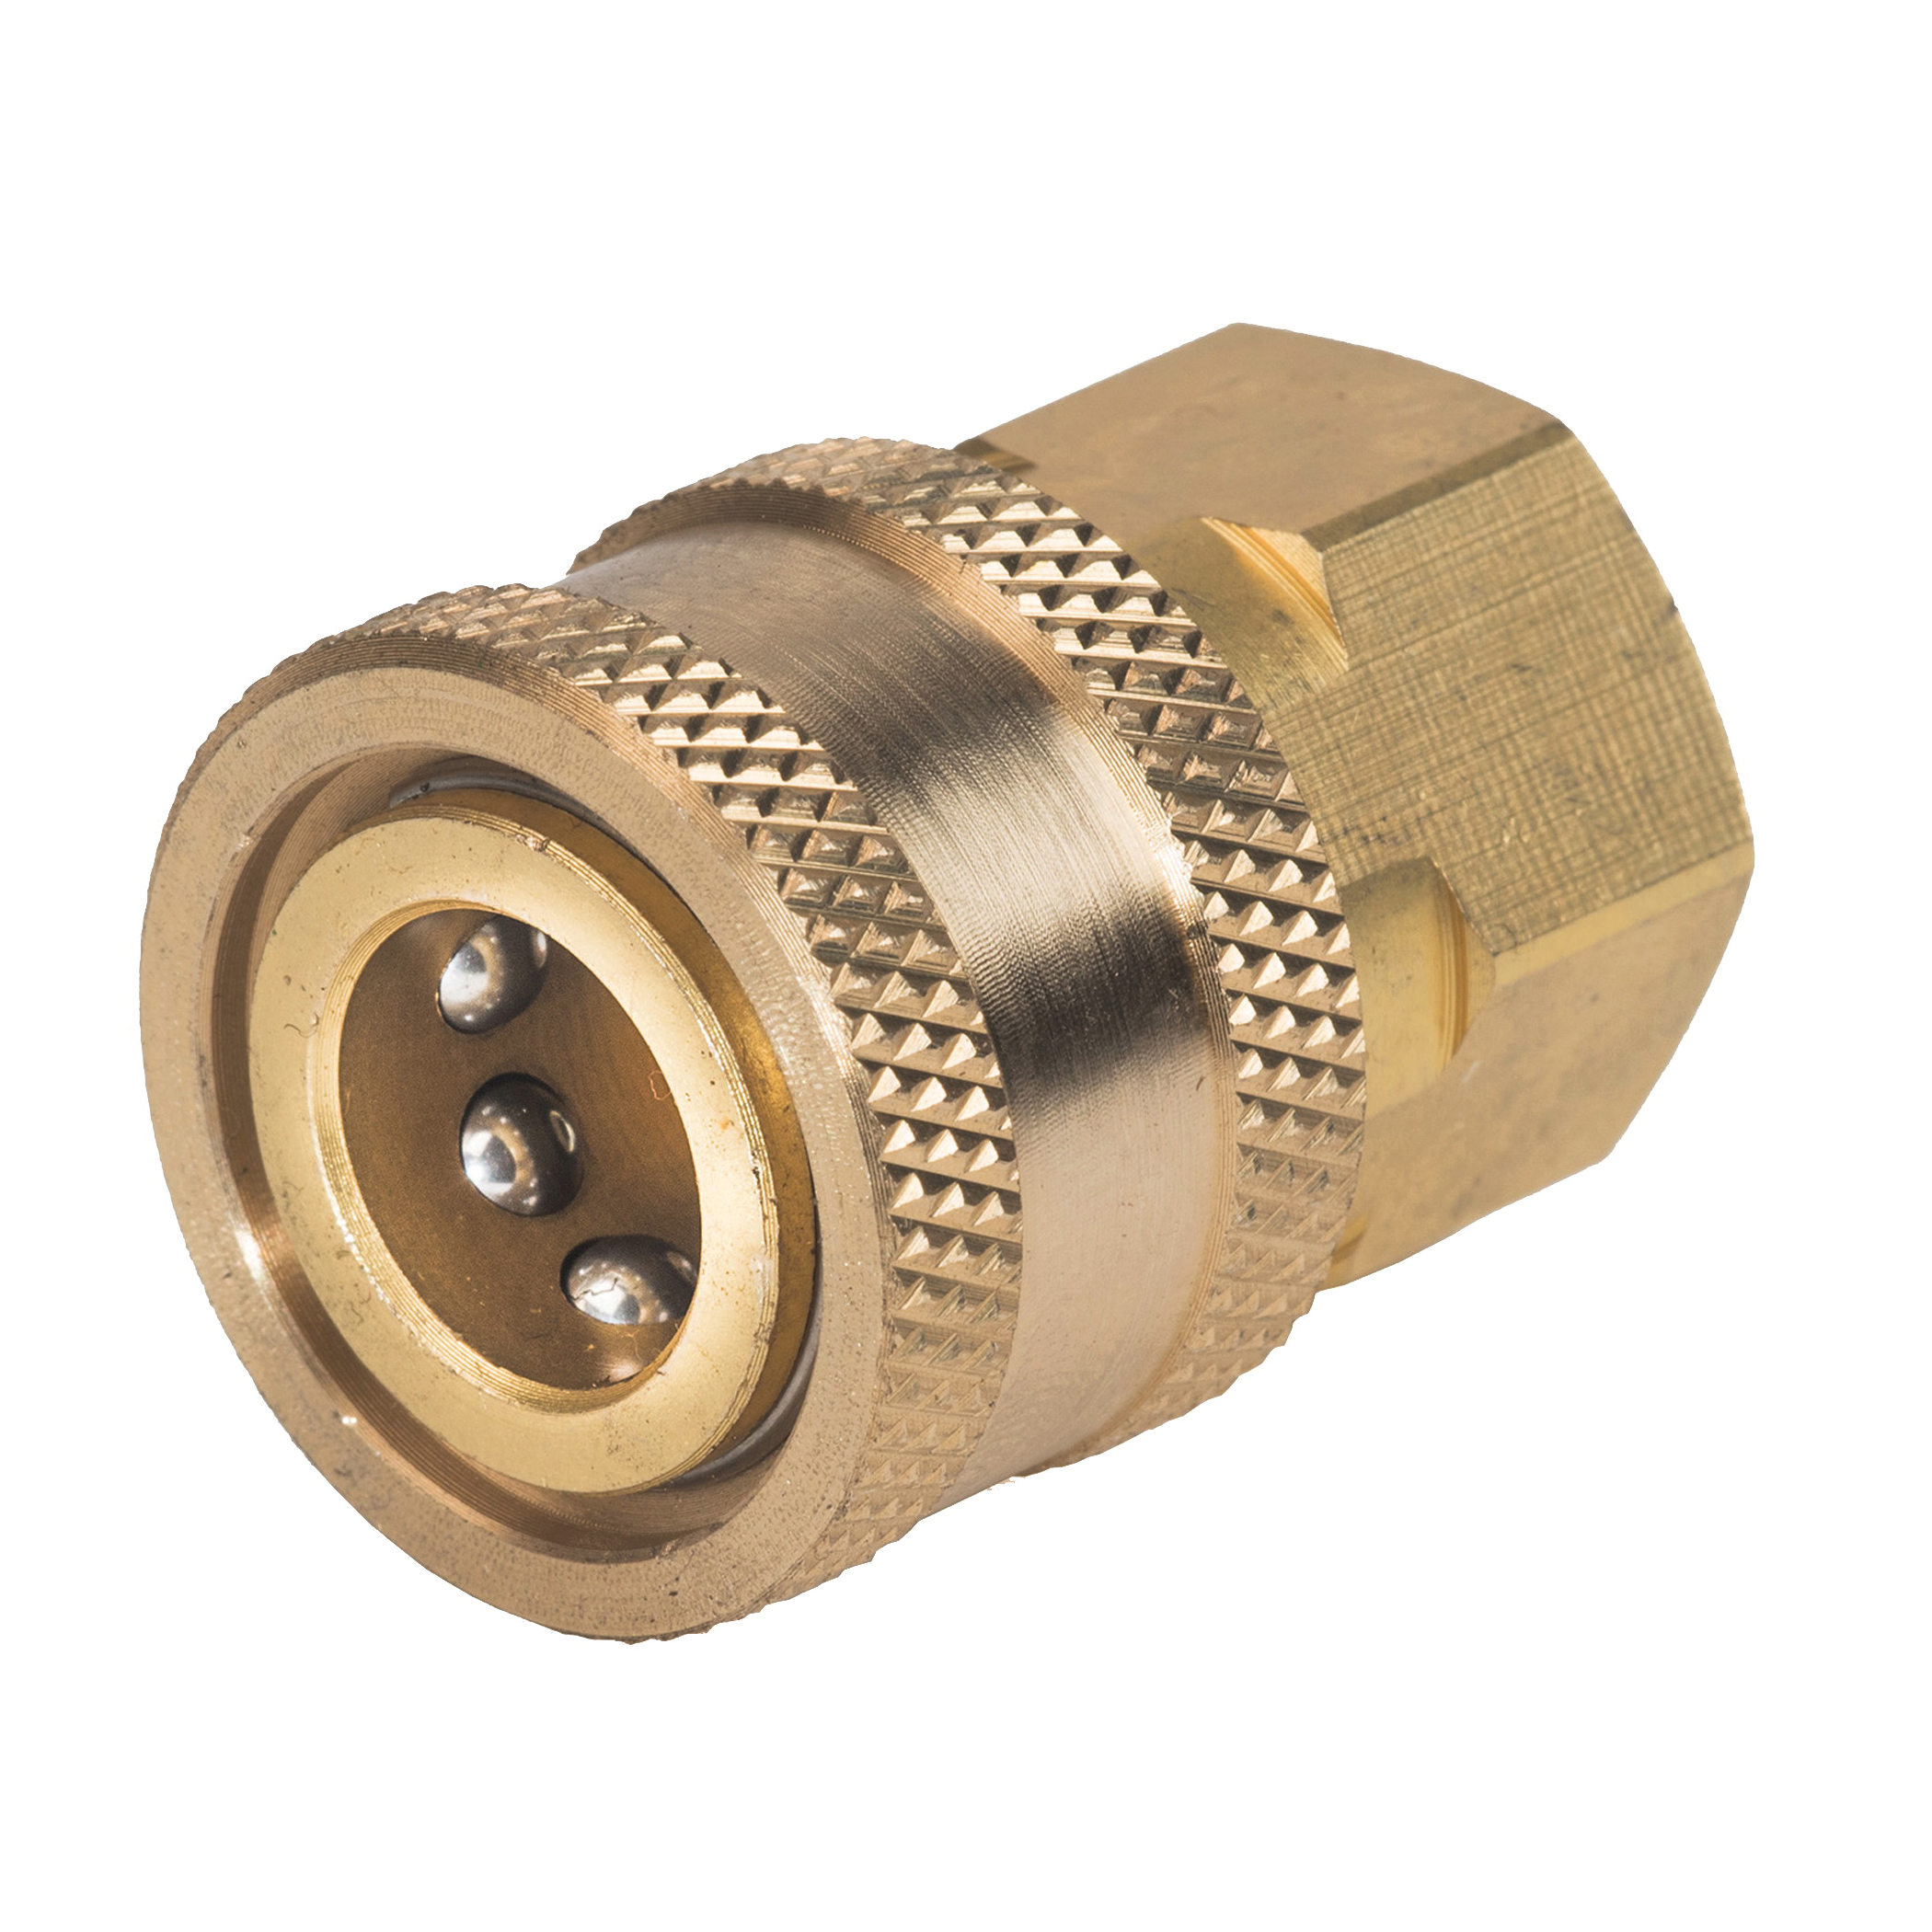 Picture of Karcher 8.641-135.0 Coupler Socket, 3/8 in x M22 Connection, QD x FPT